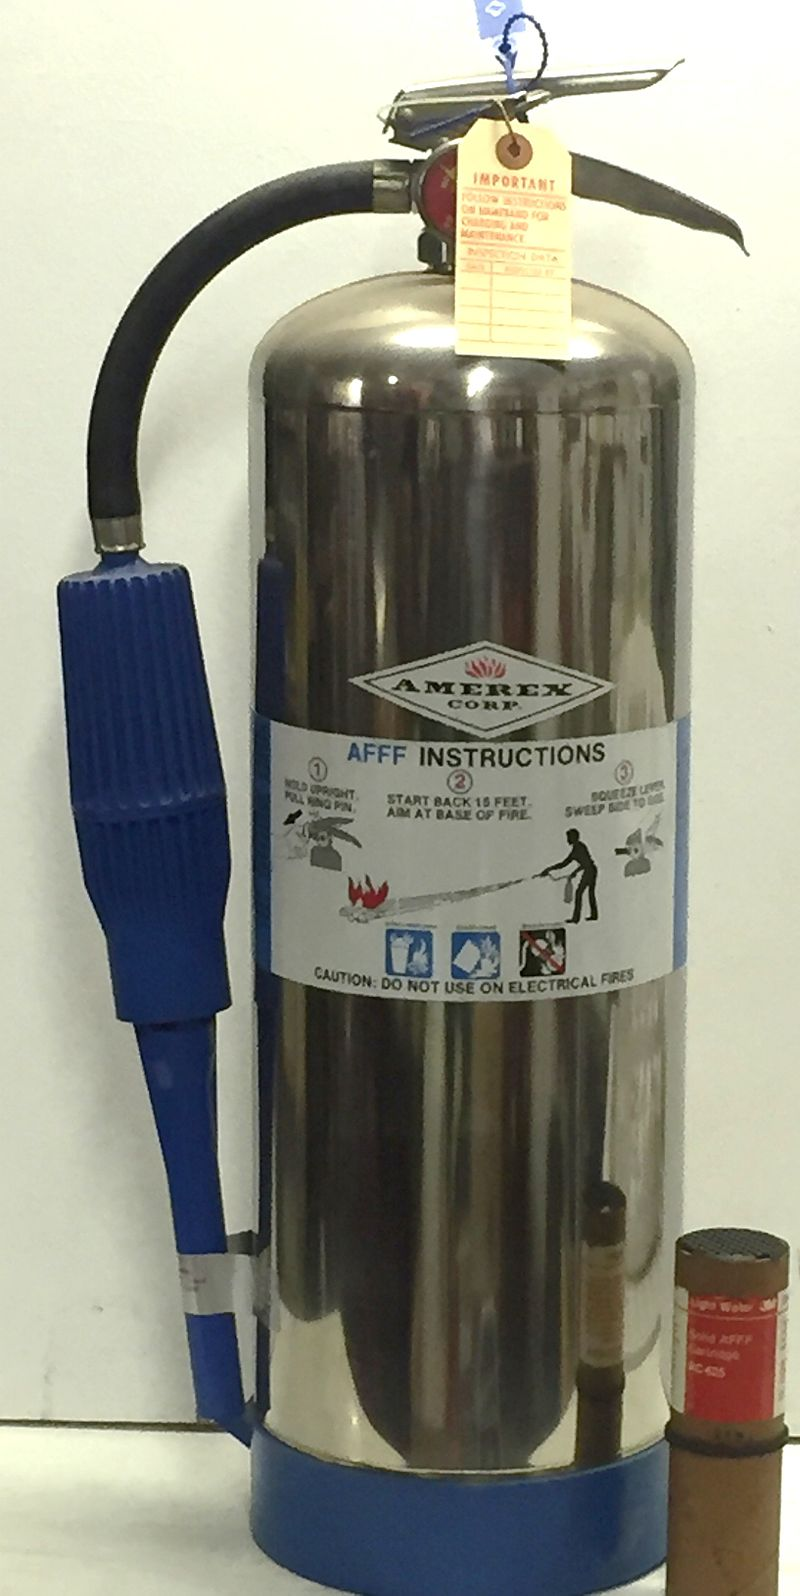 Solid-Charge AFFF Fire Extinguisher, 1980s.jpg